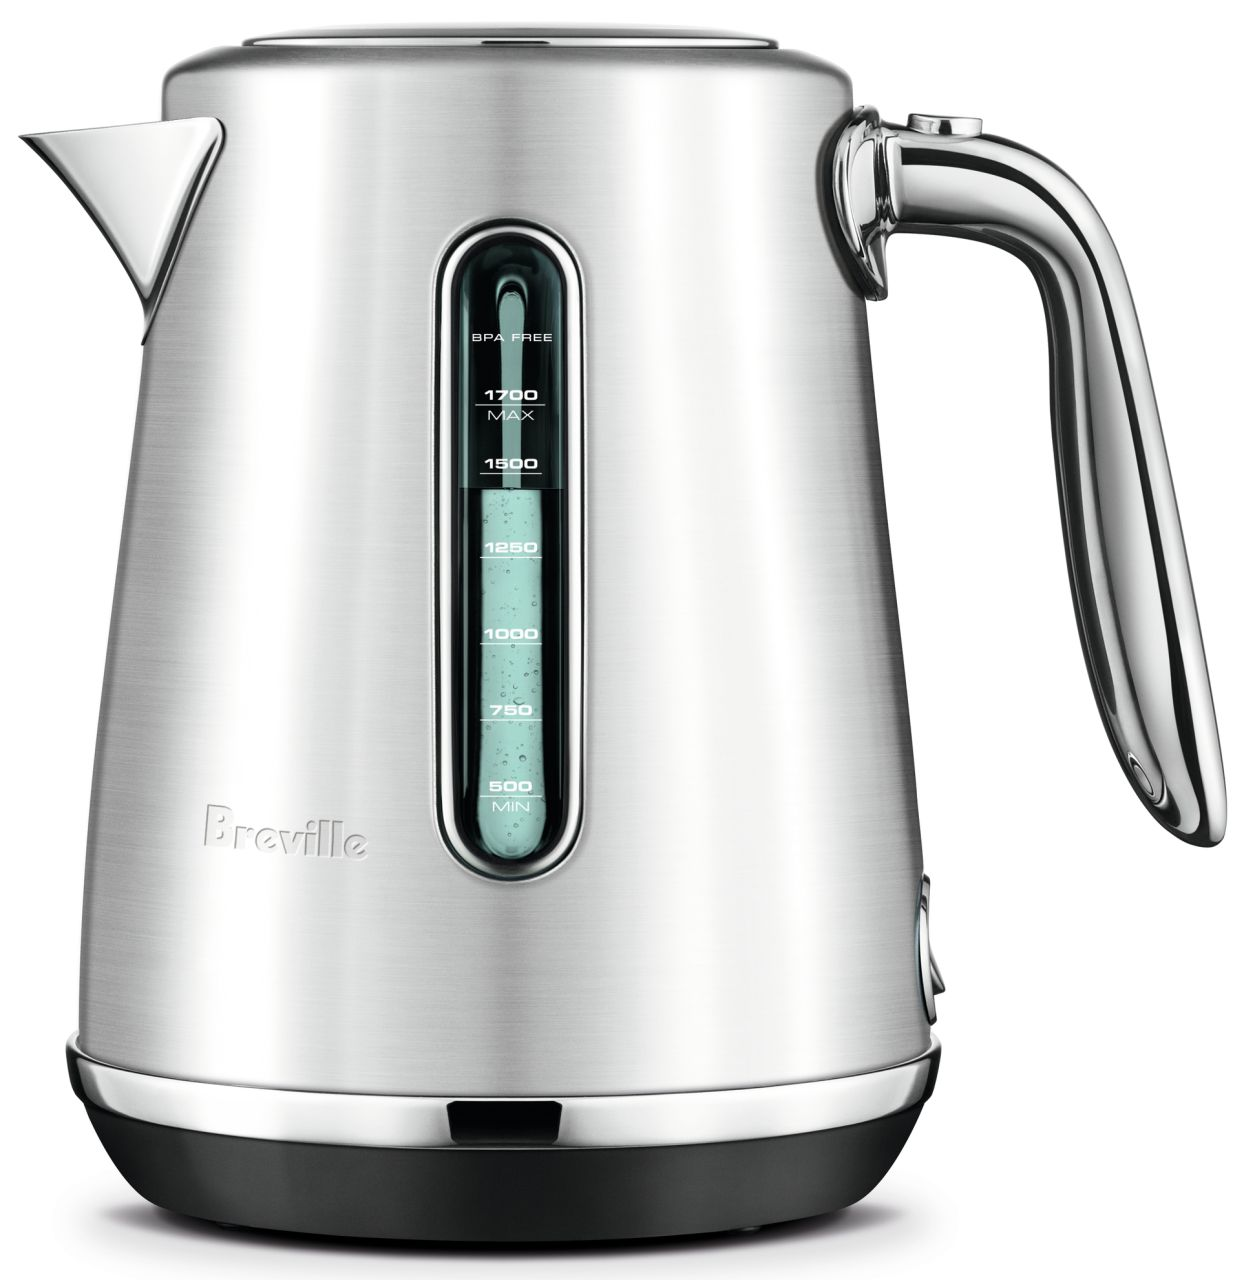 Breville - The Soft Top Luxe Kettle - Brushed Stainless Steel